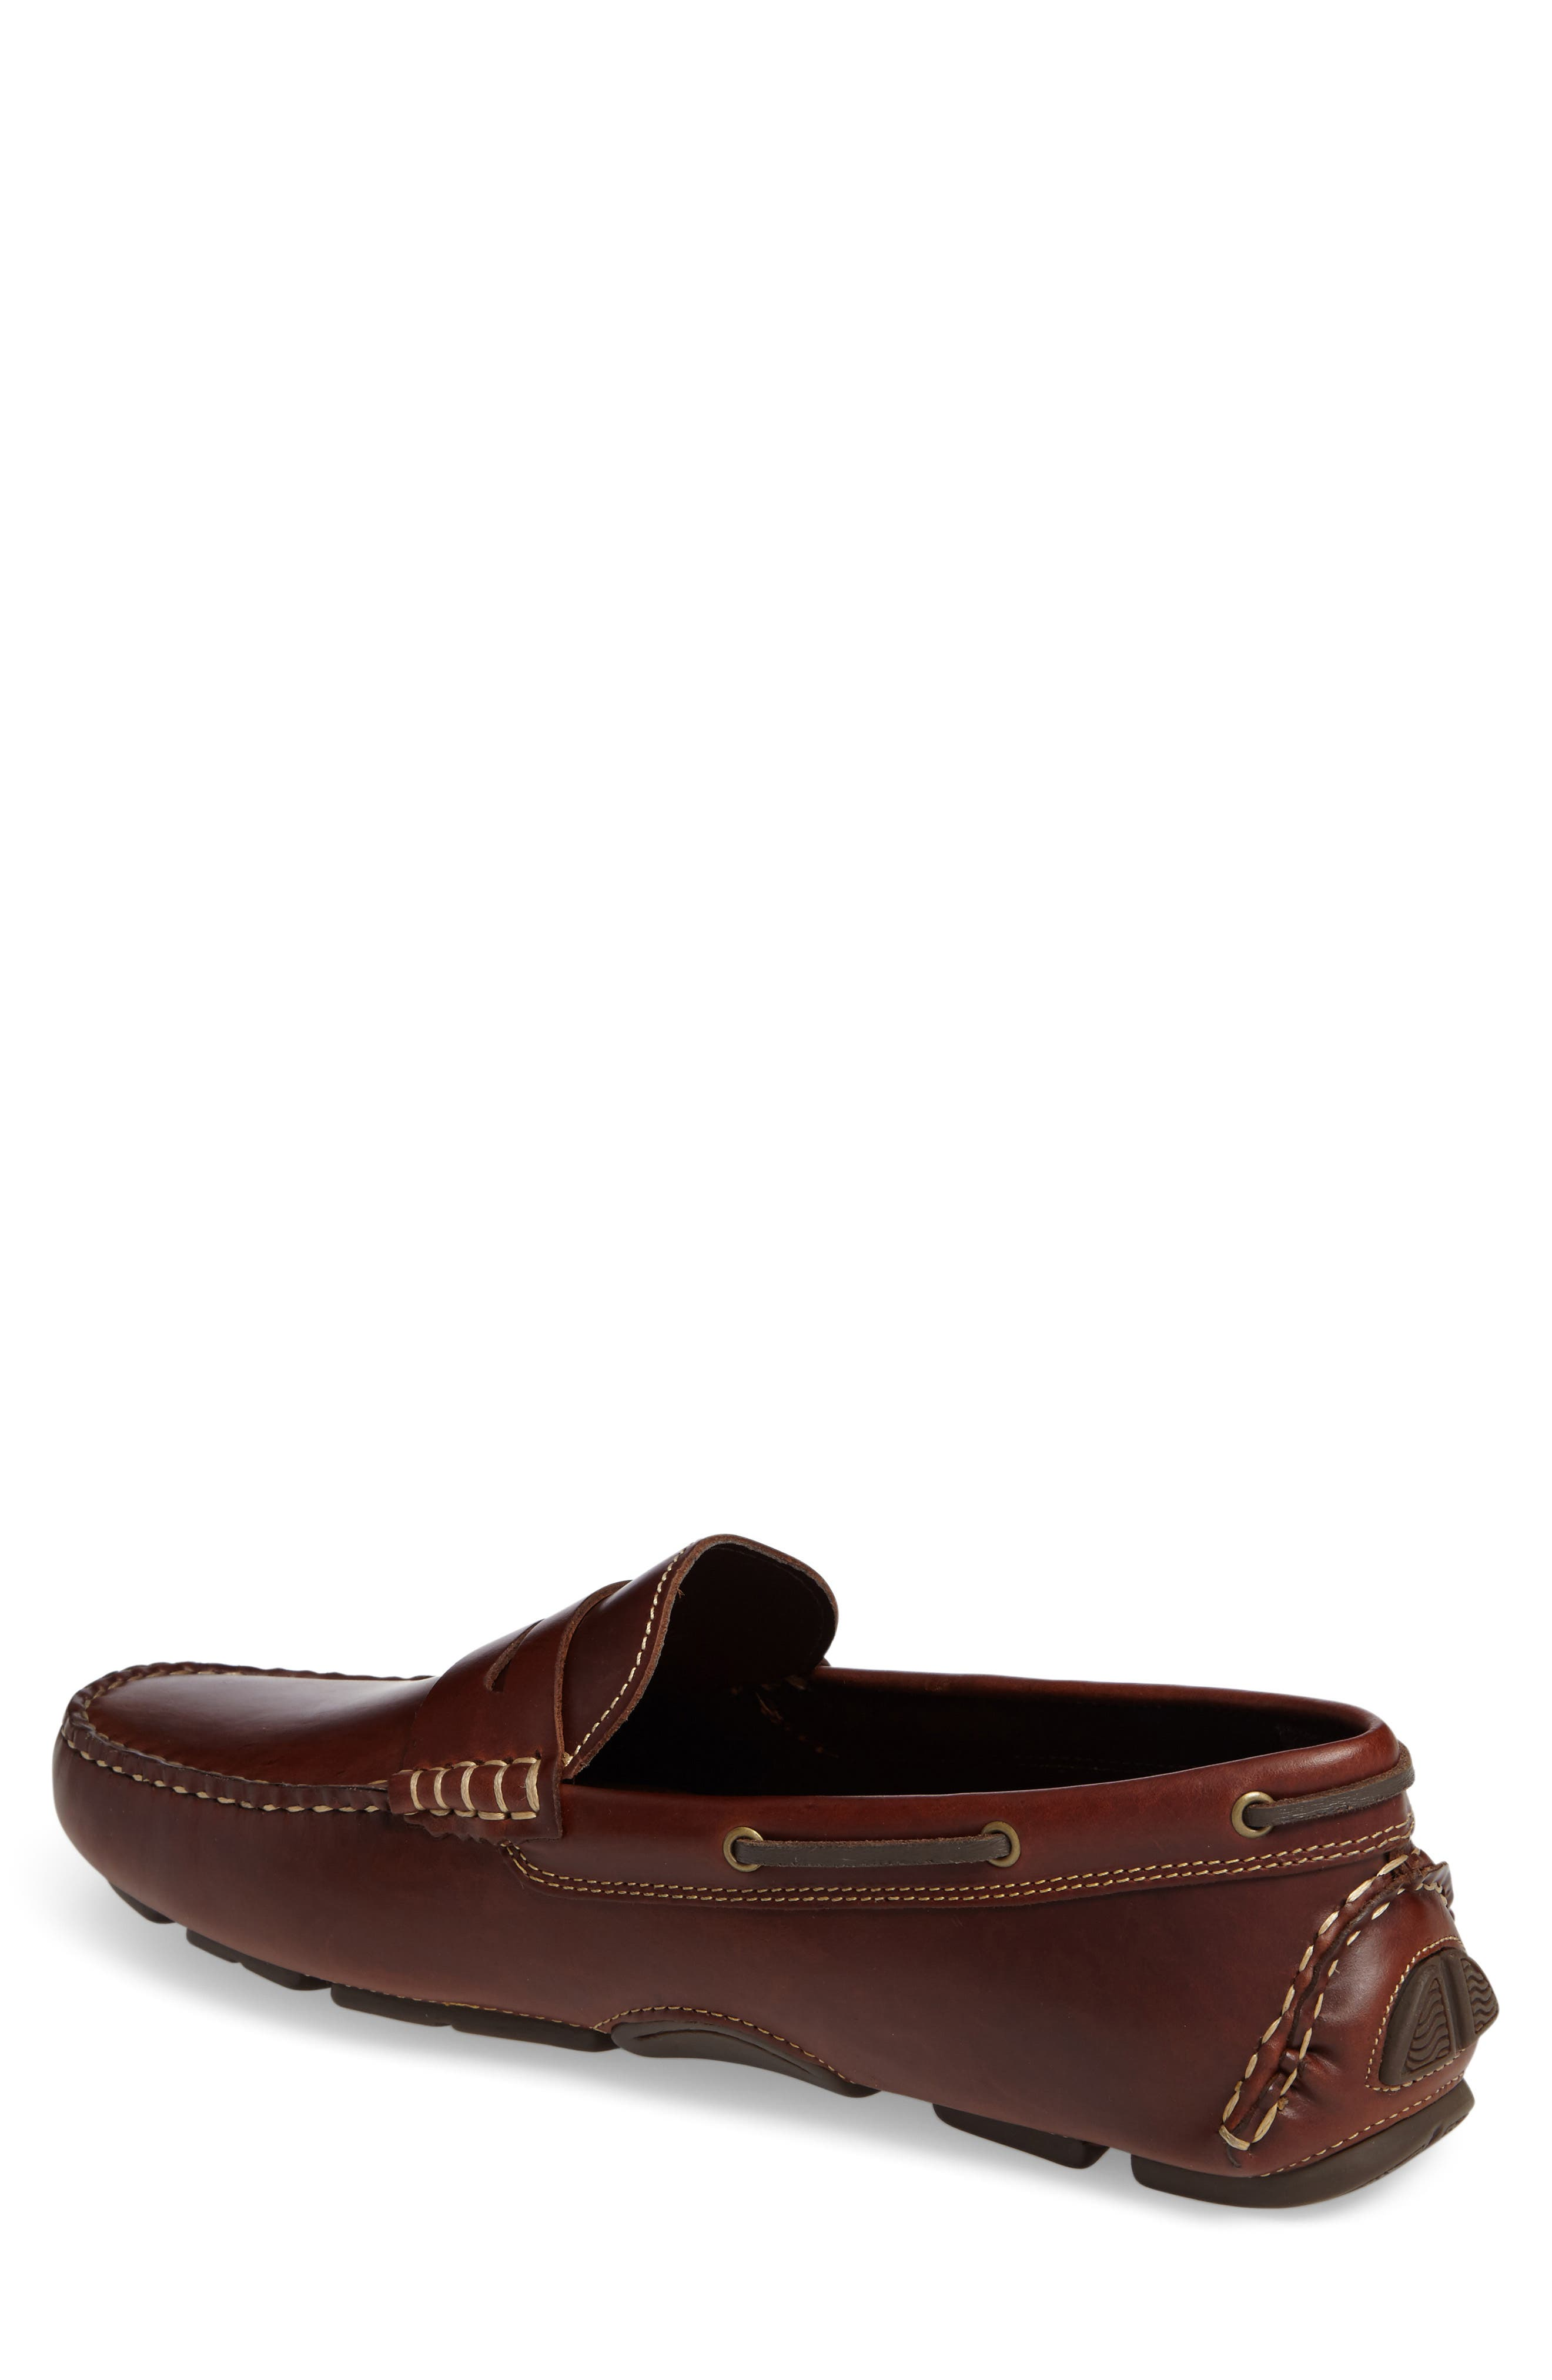 Gibson Penny Driving Loafer,                             Alternate thumbnail 2, color,                             TAN LEATHER